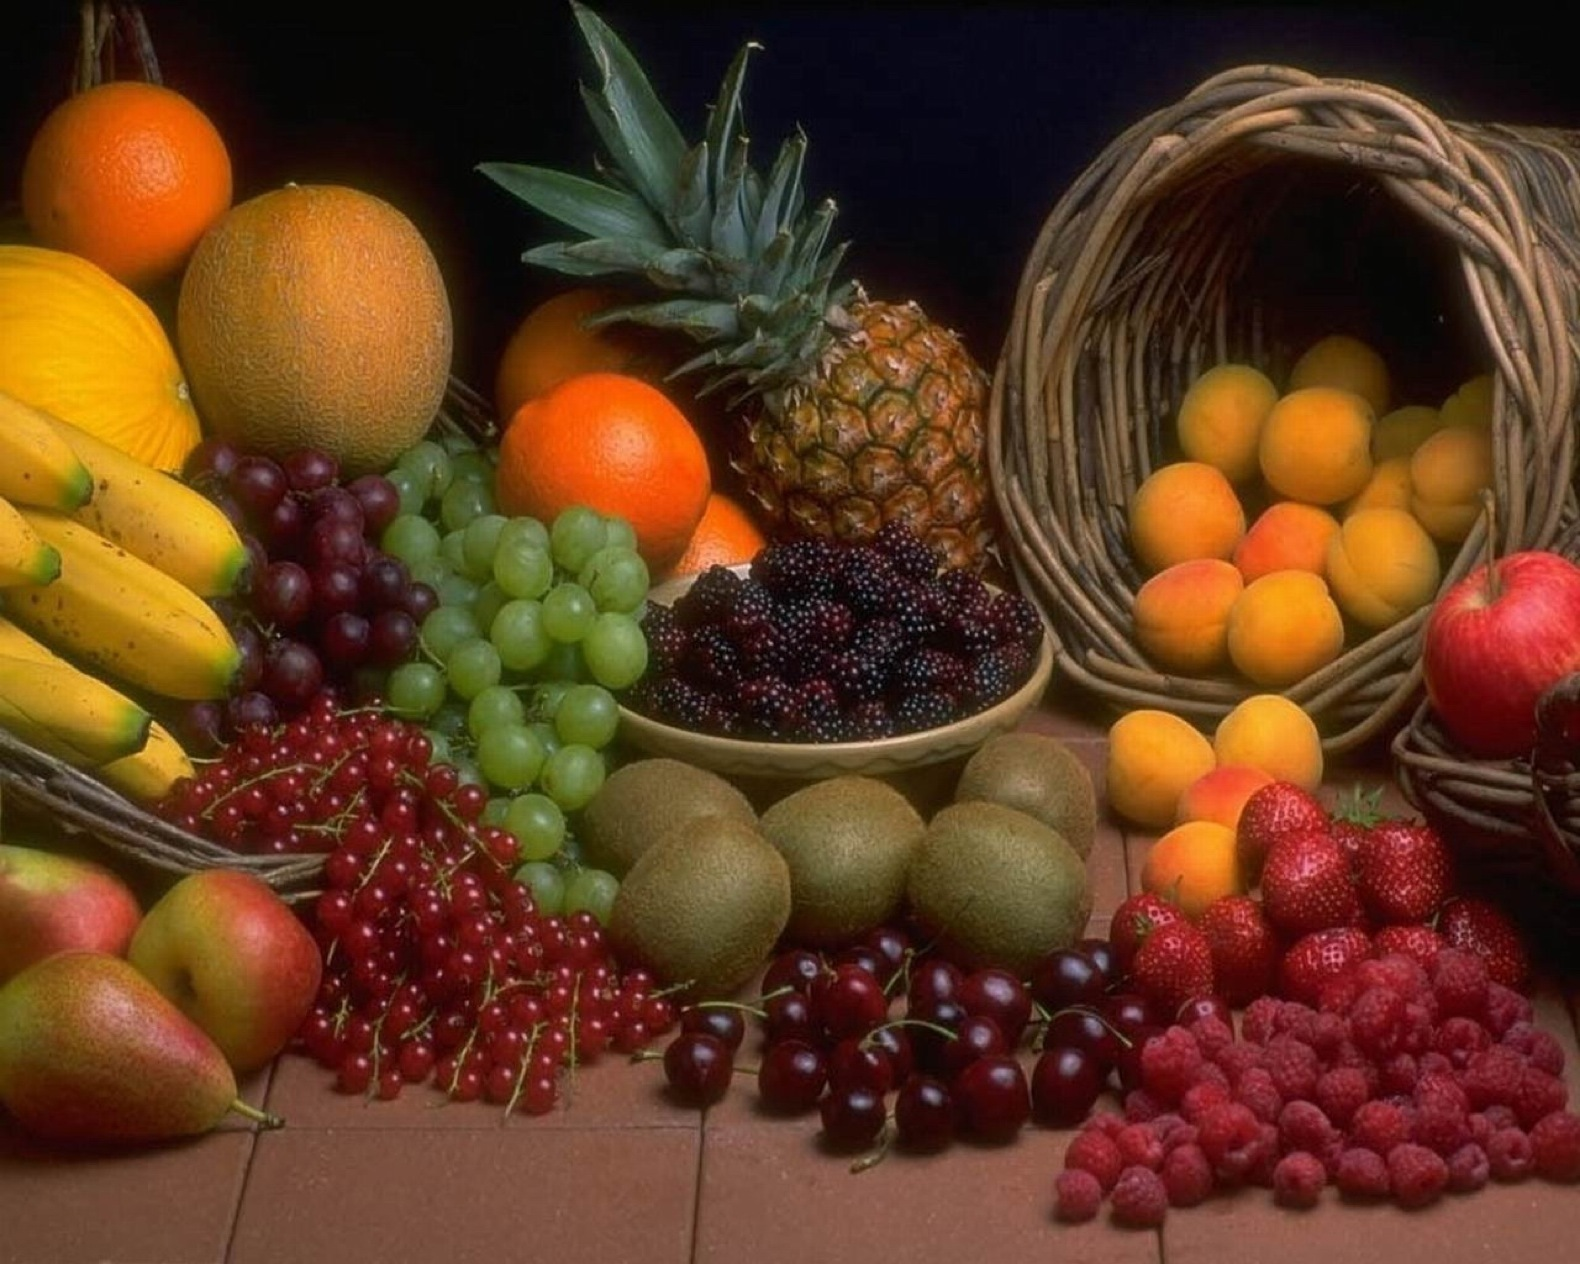 fruits yummy delicious food